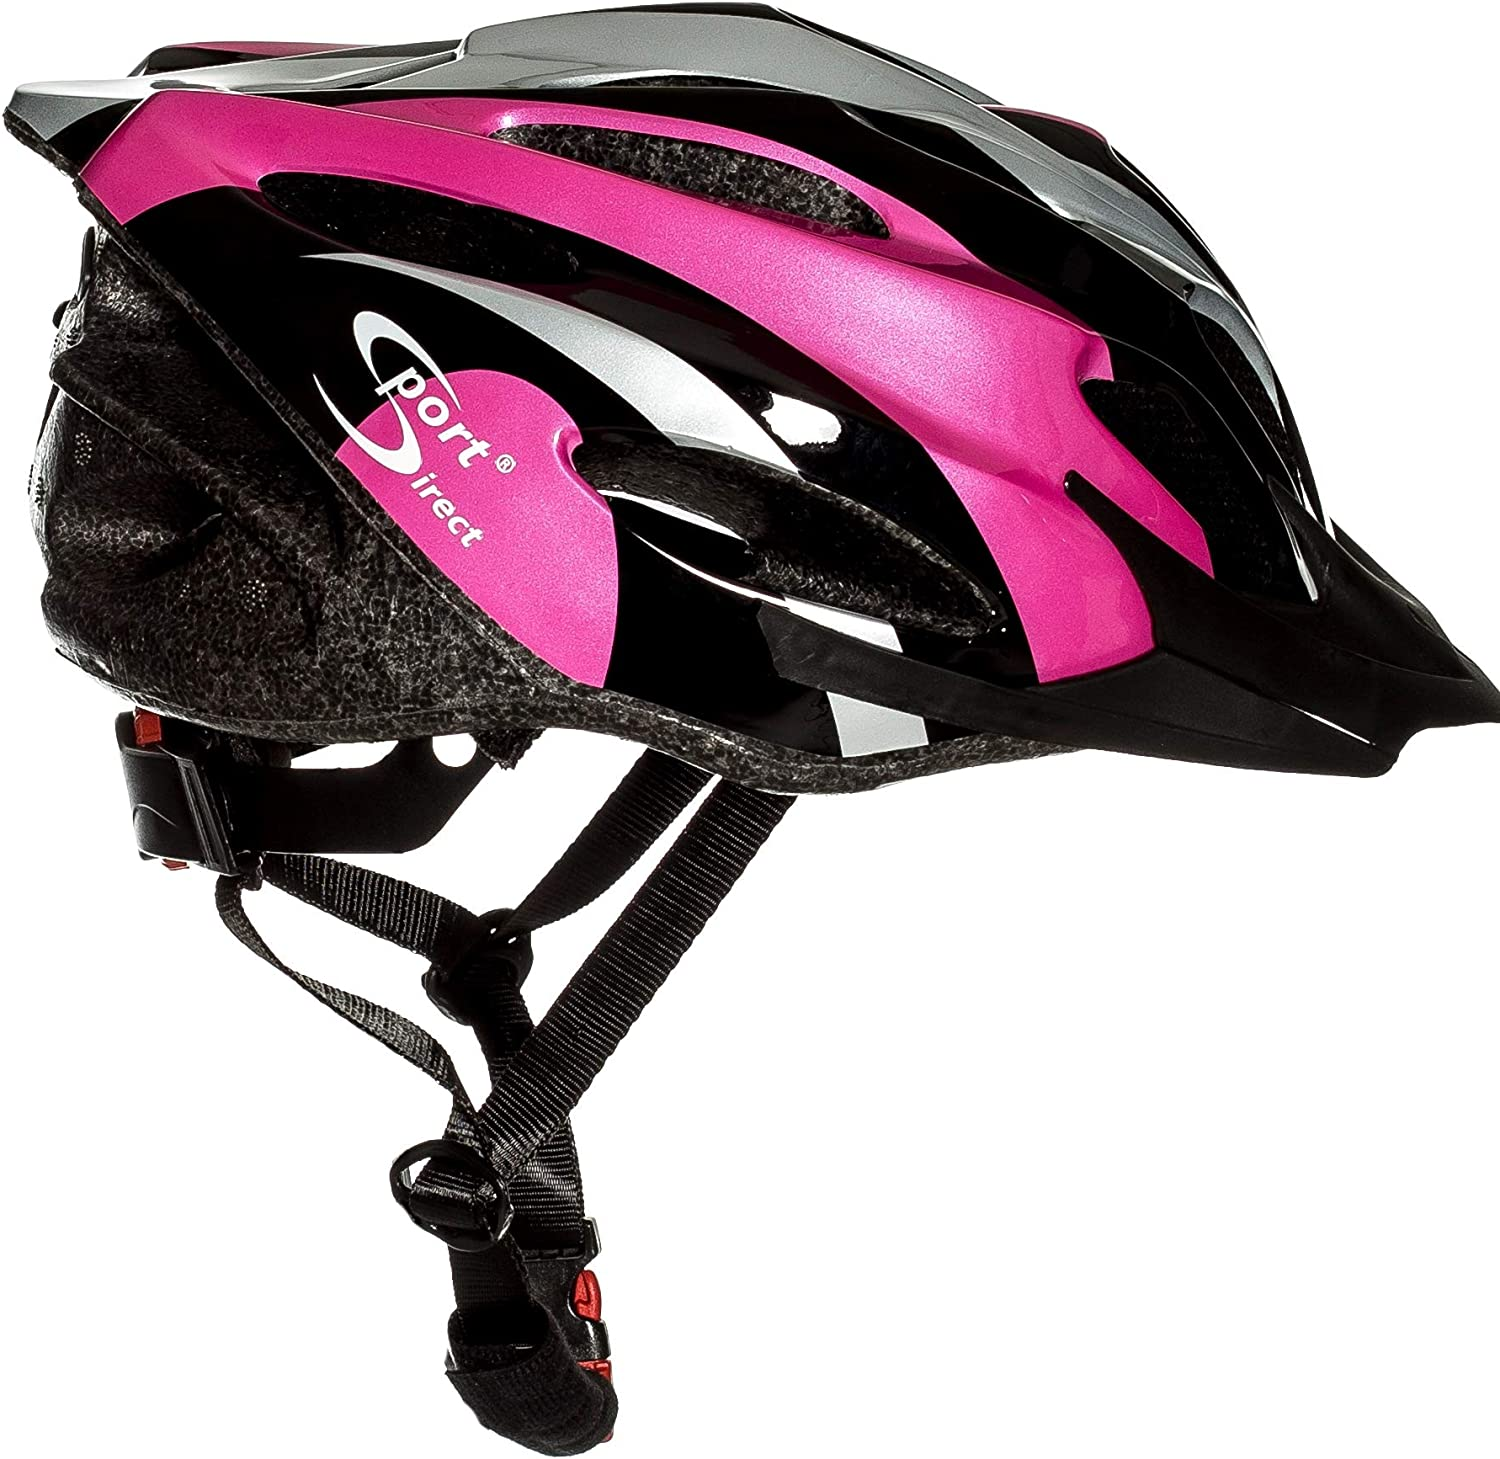 Sport Direct Women s Vapour Bicycle Helmet – Pink Black Silver, Size 56-58